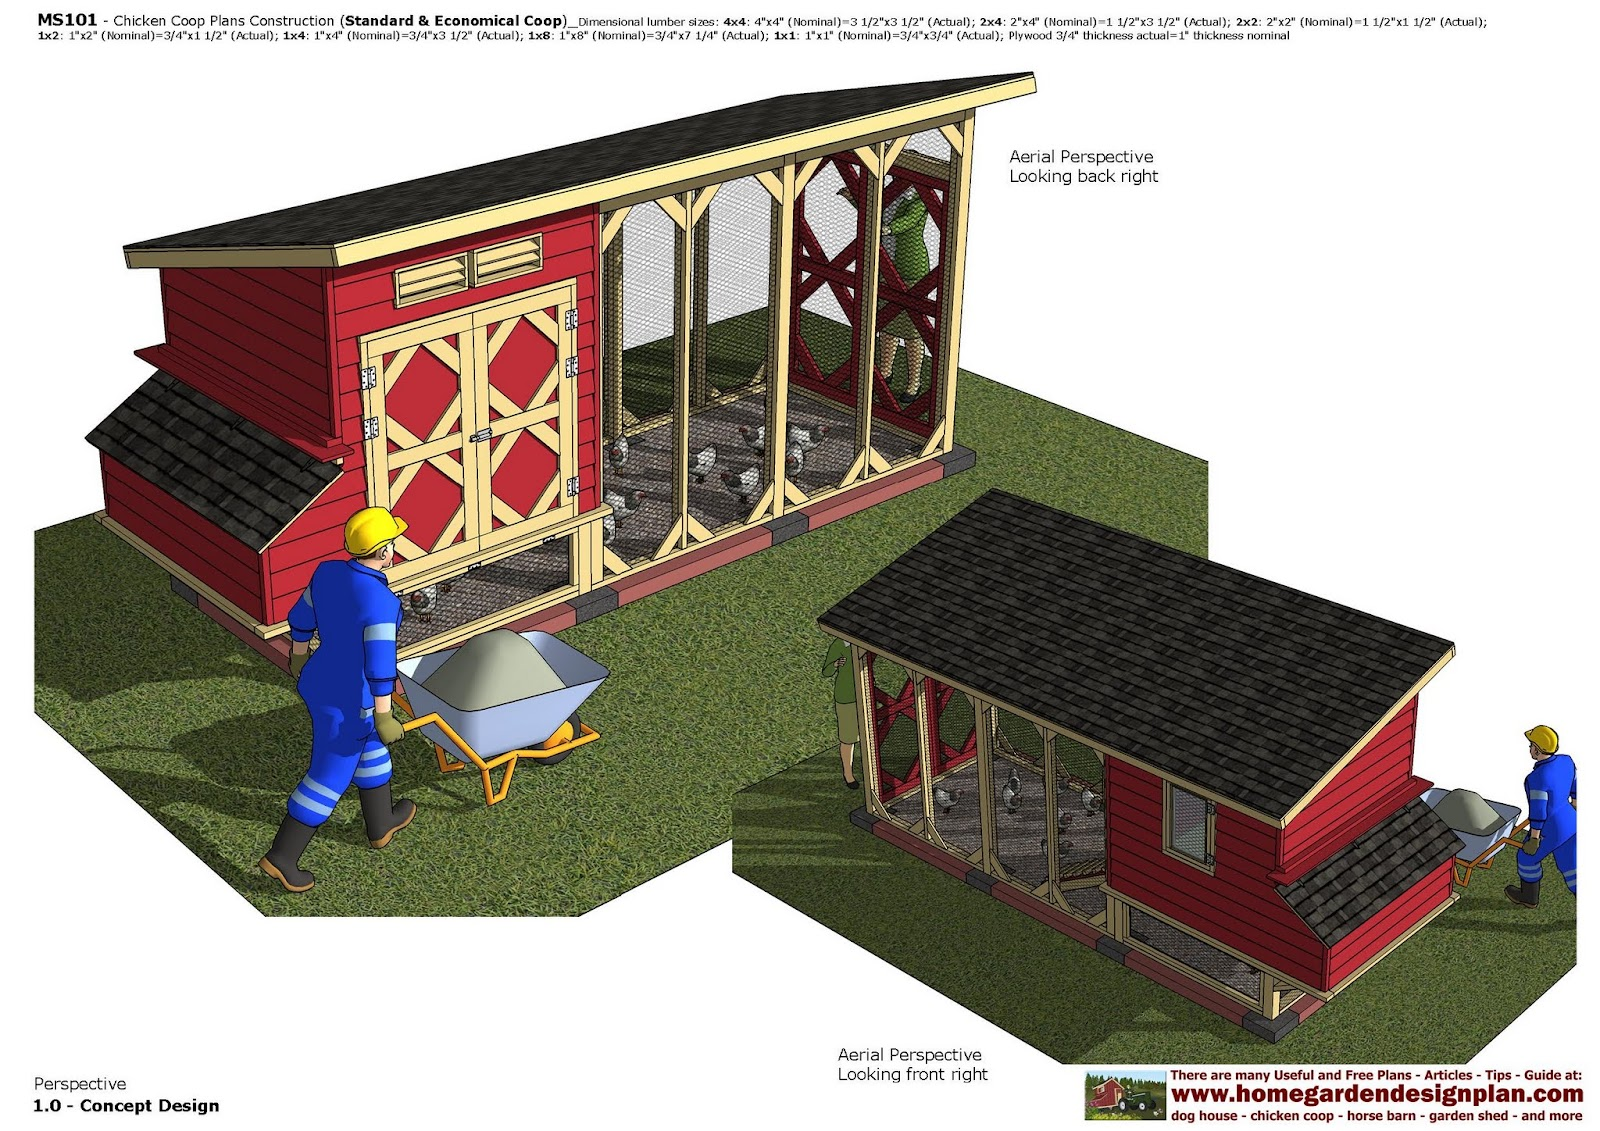 Exceptionnel MS101   Chicken Coop Plans Construction   Chicken Coop Design   How To  Build A Chicken Coop .